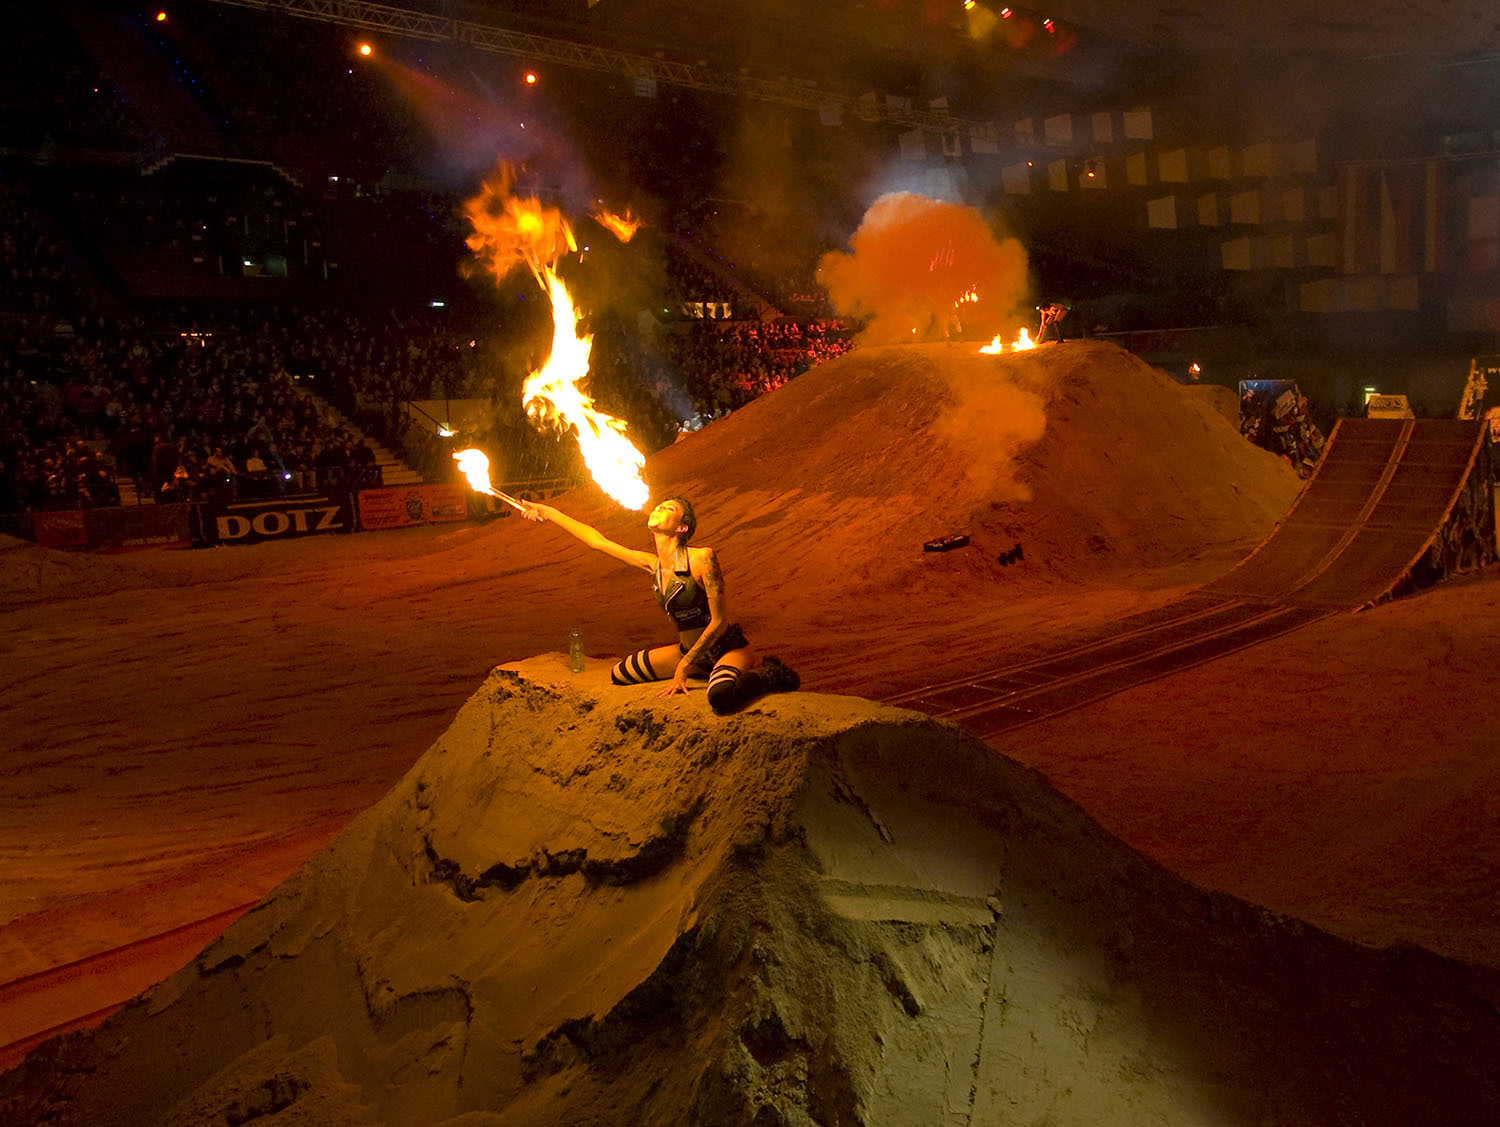 Masters-of-Dirt Fuel Girls machen Feuershow am Track in Halle